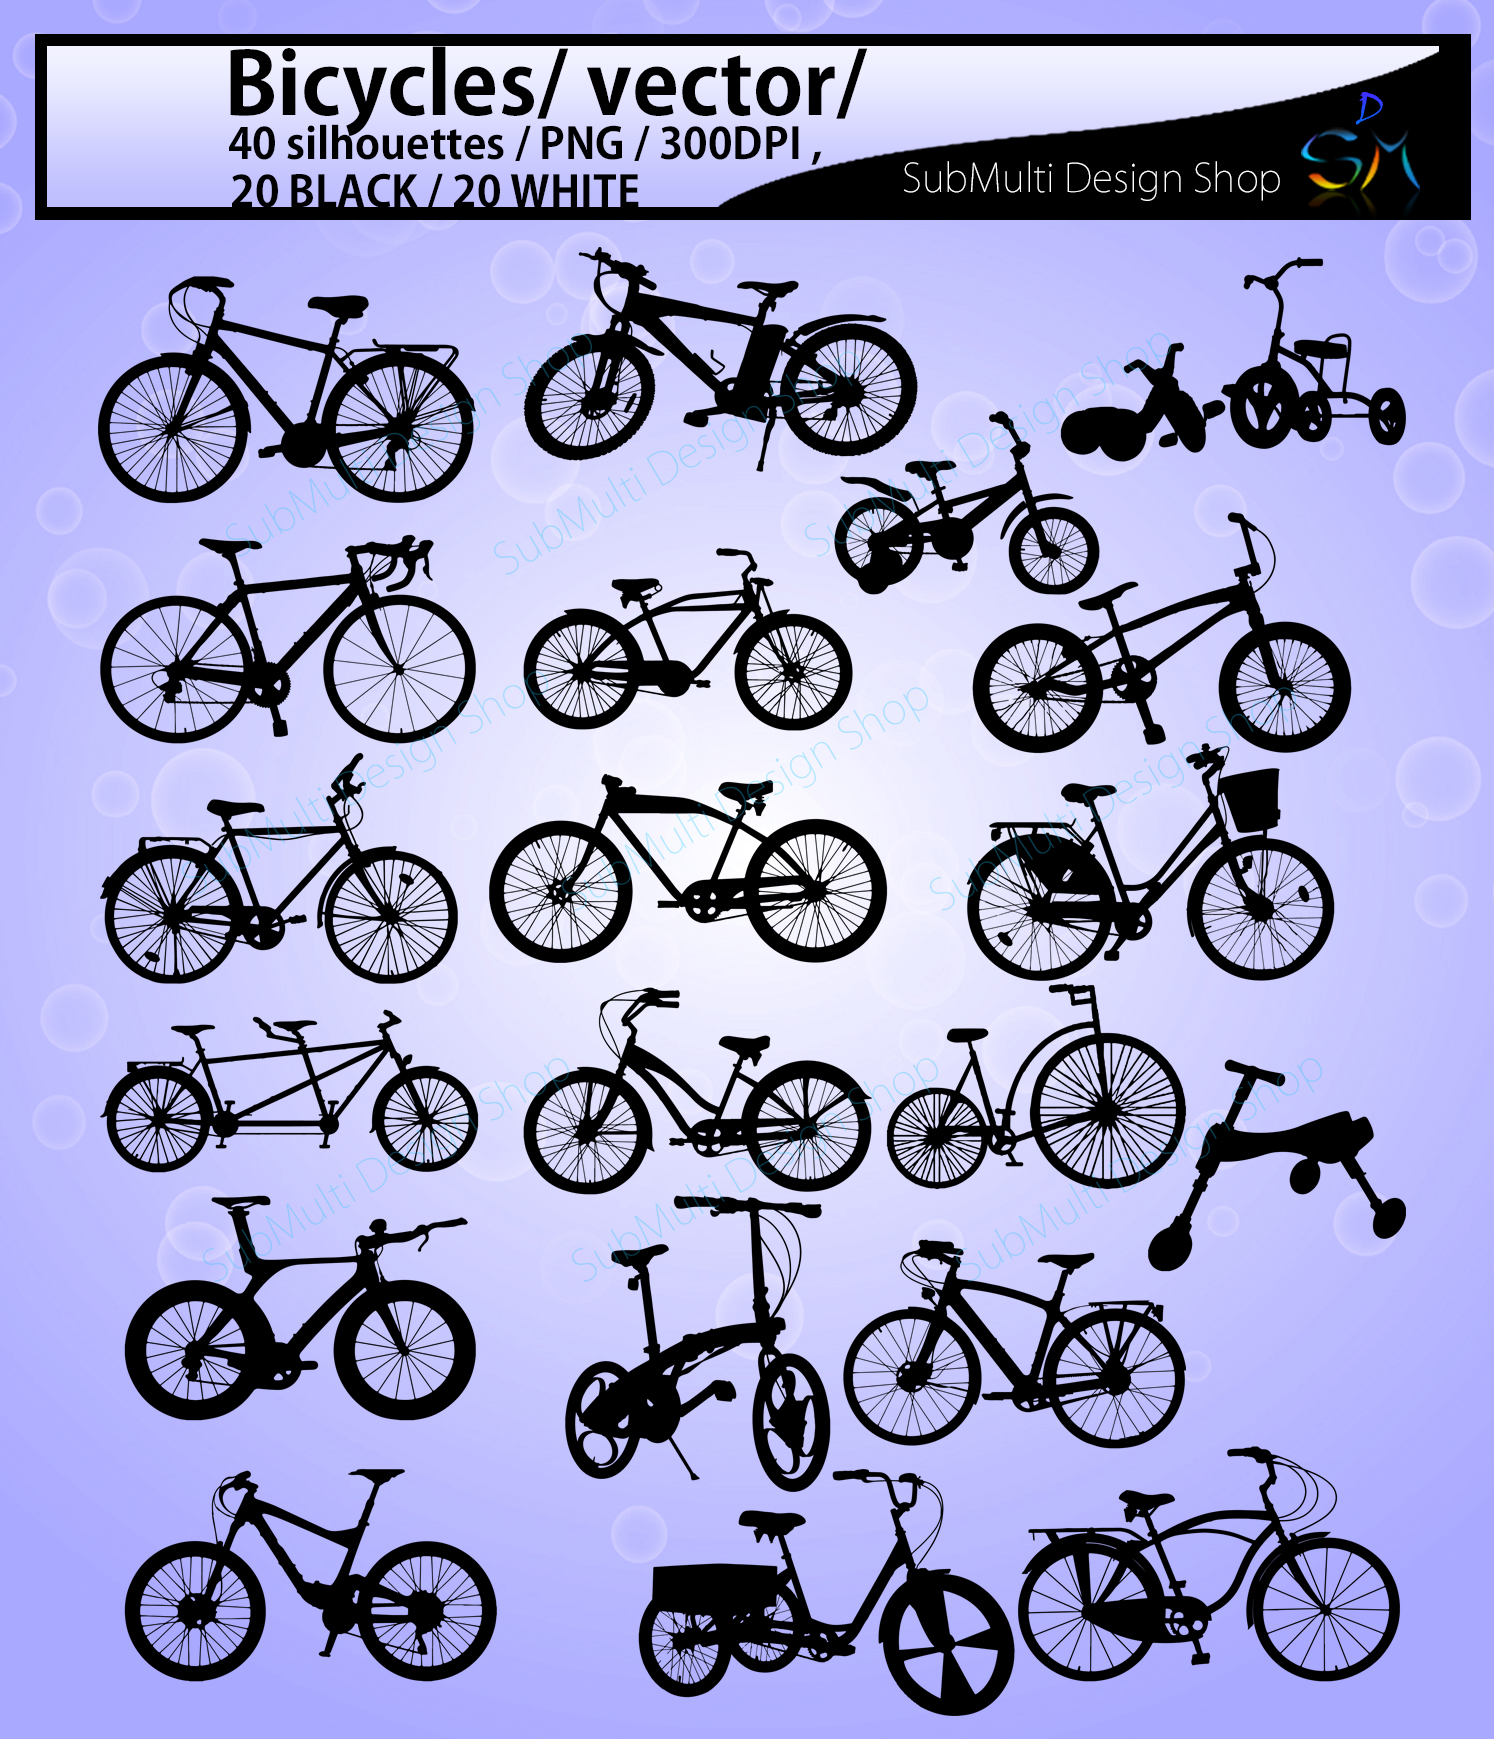 bicycle silhouette svg / Bicycles / bicycle / bicycle riders / riders silhouette/ vector / bike rider / SVG / PNG / Dxf / cut file example image 2